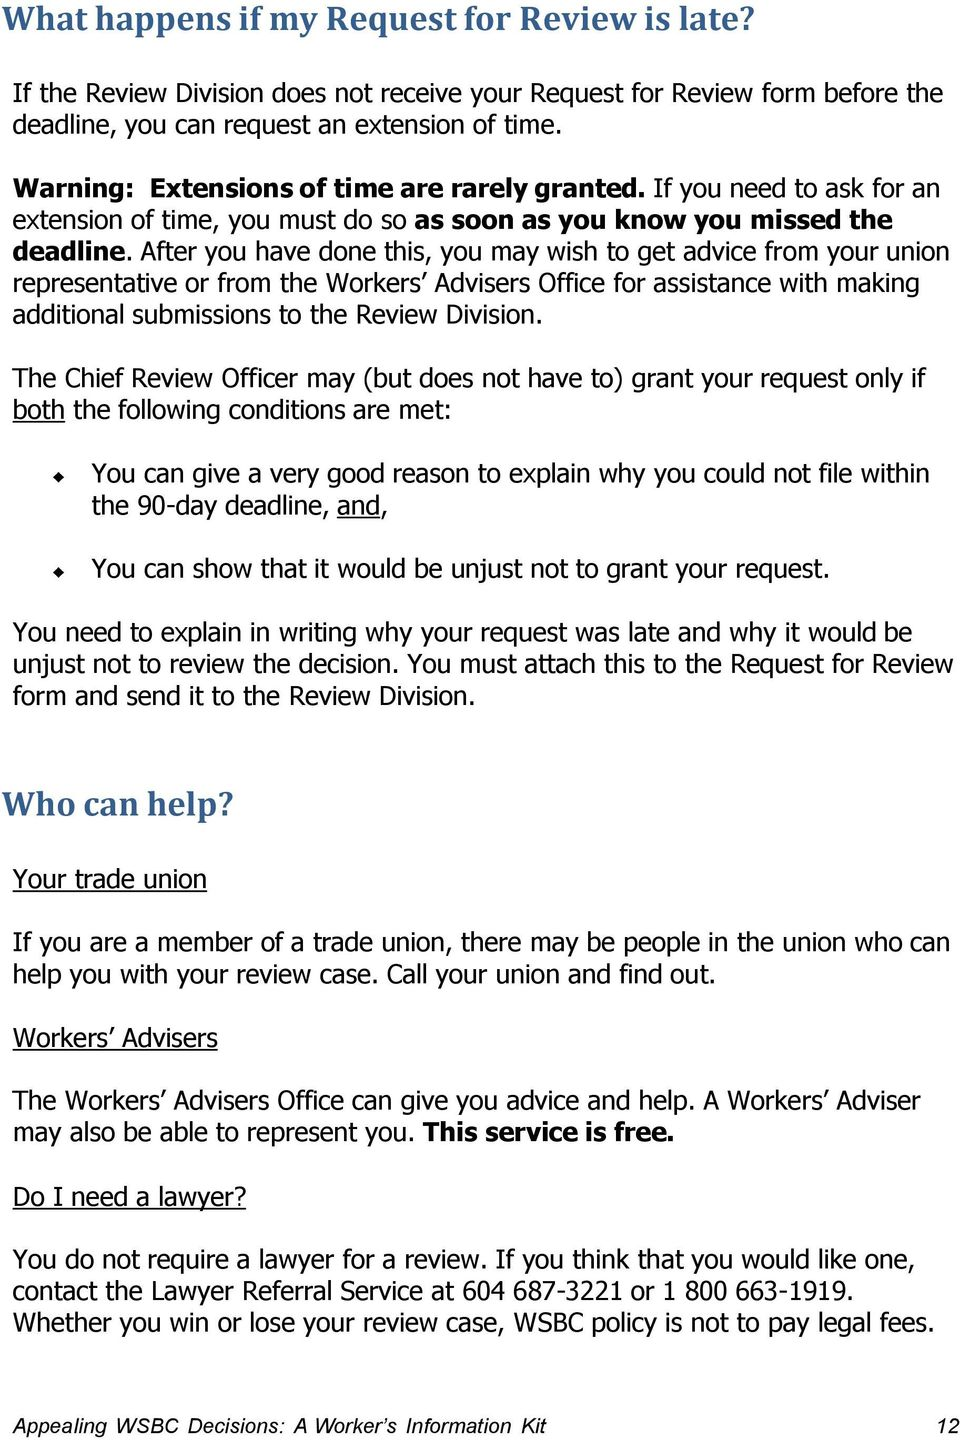 After you have done this, you may wish to get advice from your union representative or from the Workers Advisers Office for assistance with making additional submissions to the Review Division.